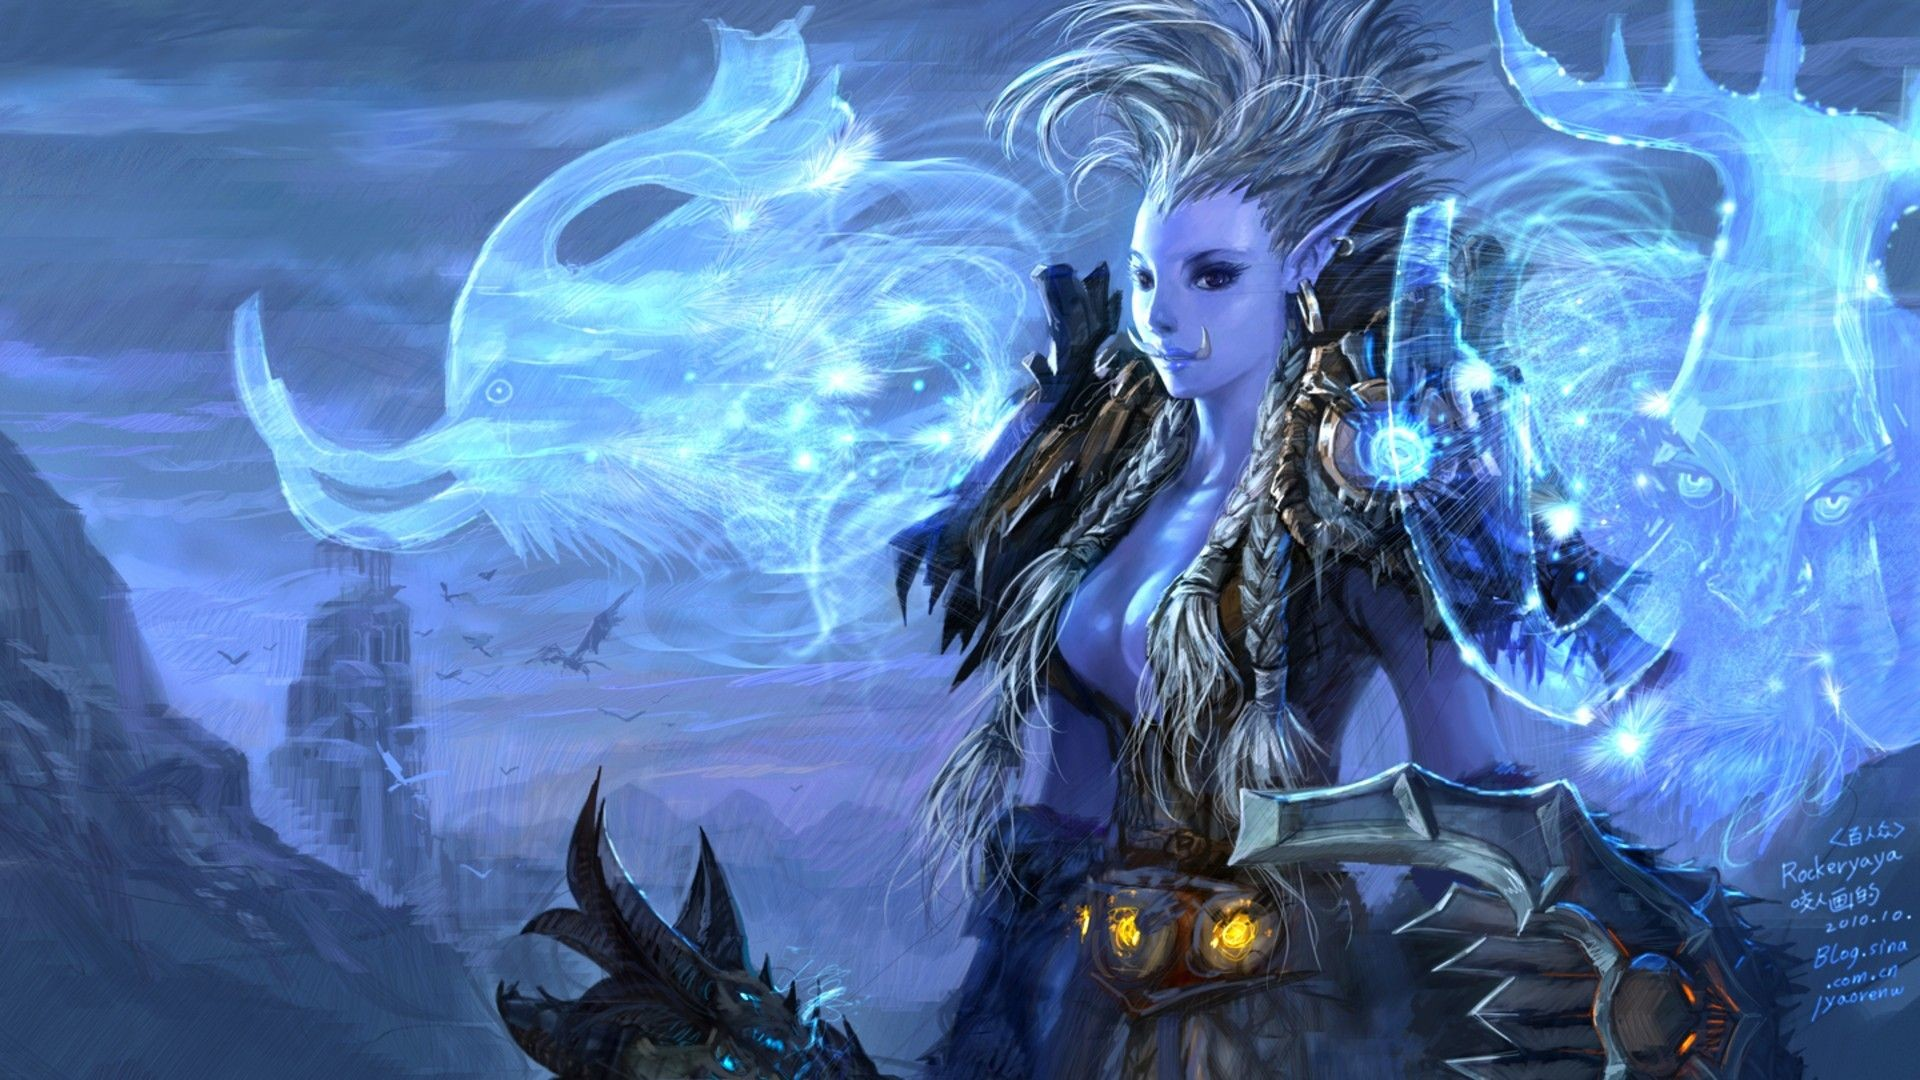 Res: 1920x1080, World Of Warcraft, Wrath Of The Lich King HD desktop wallpaper .